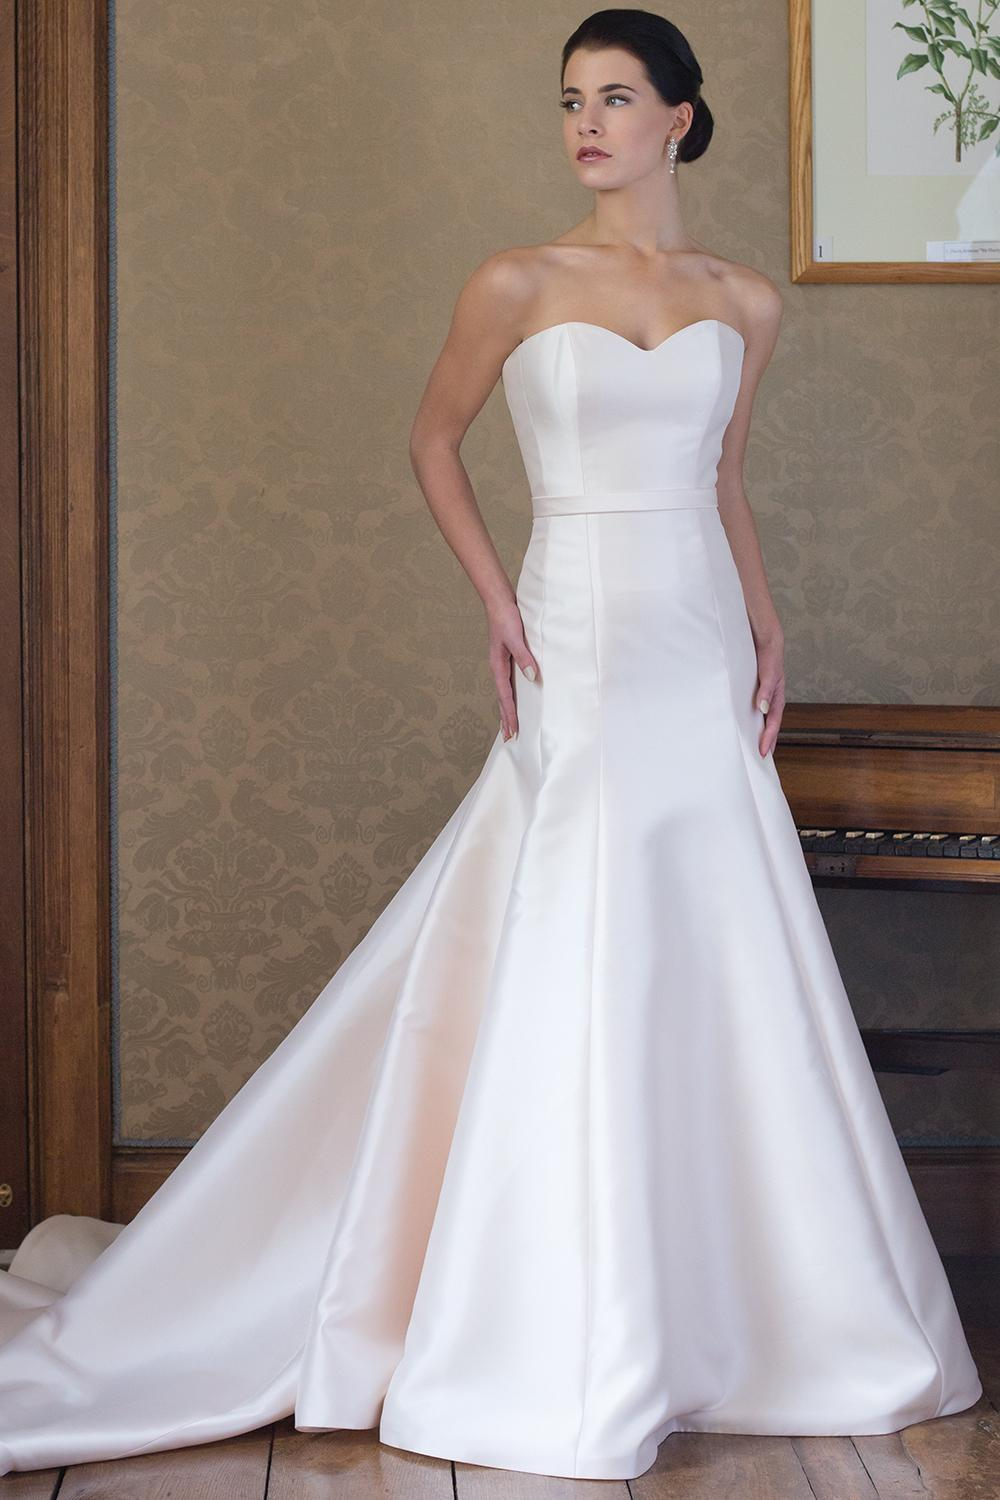 Classic Fit And Flare Wedding Dress | Kleinfeld Bridal